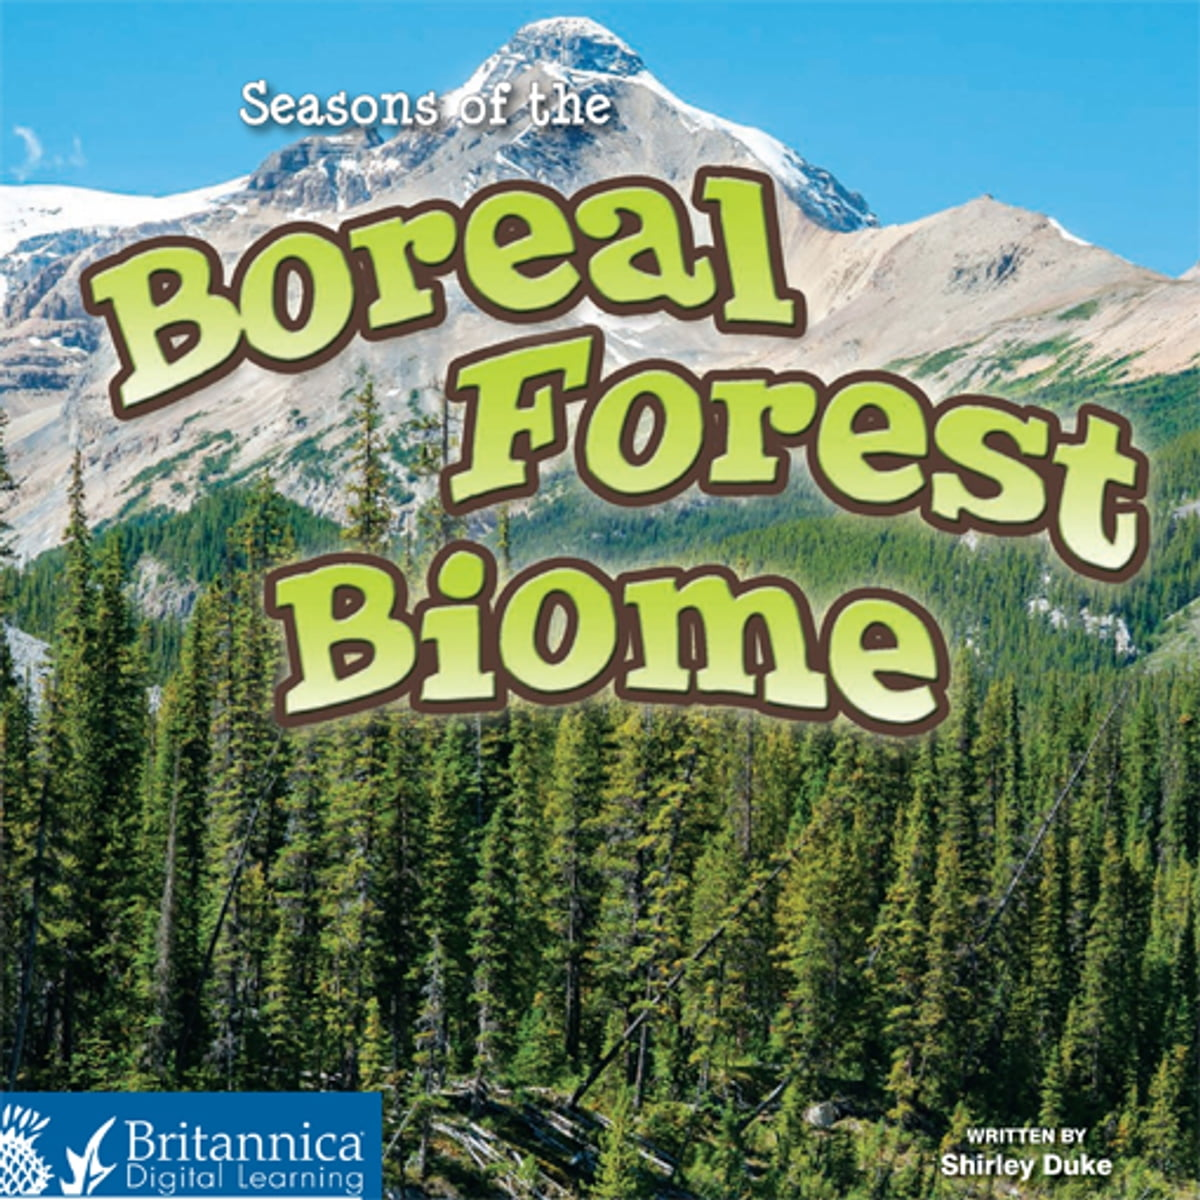 In north america, it covers most of inland canada. Seasons Of The Boreal Forest Biome Ebook By Shirley Duke 9781625131706 Rakuten Kobo United States